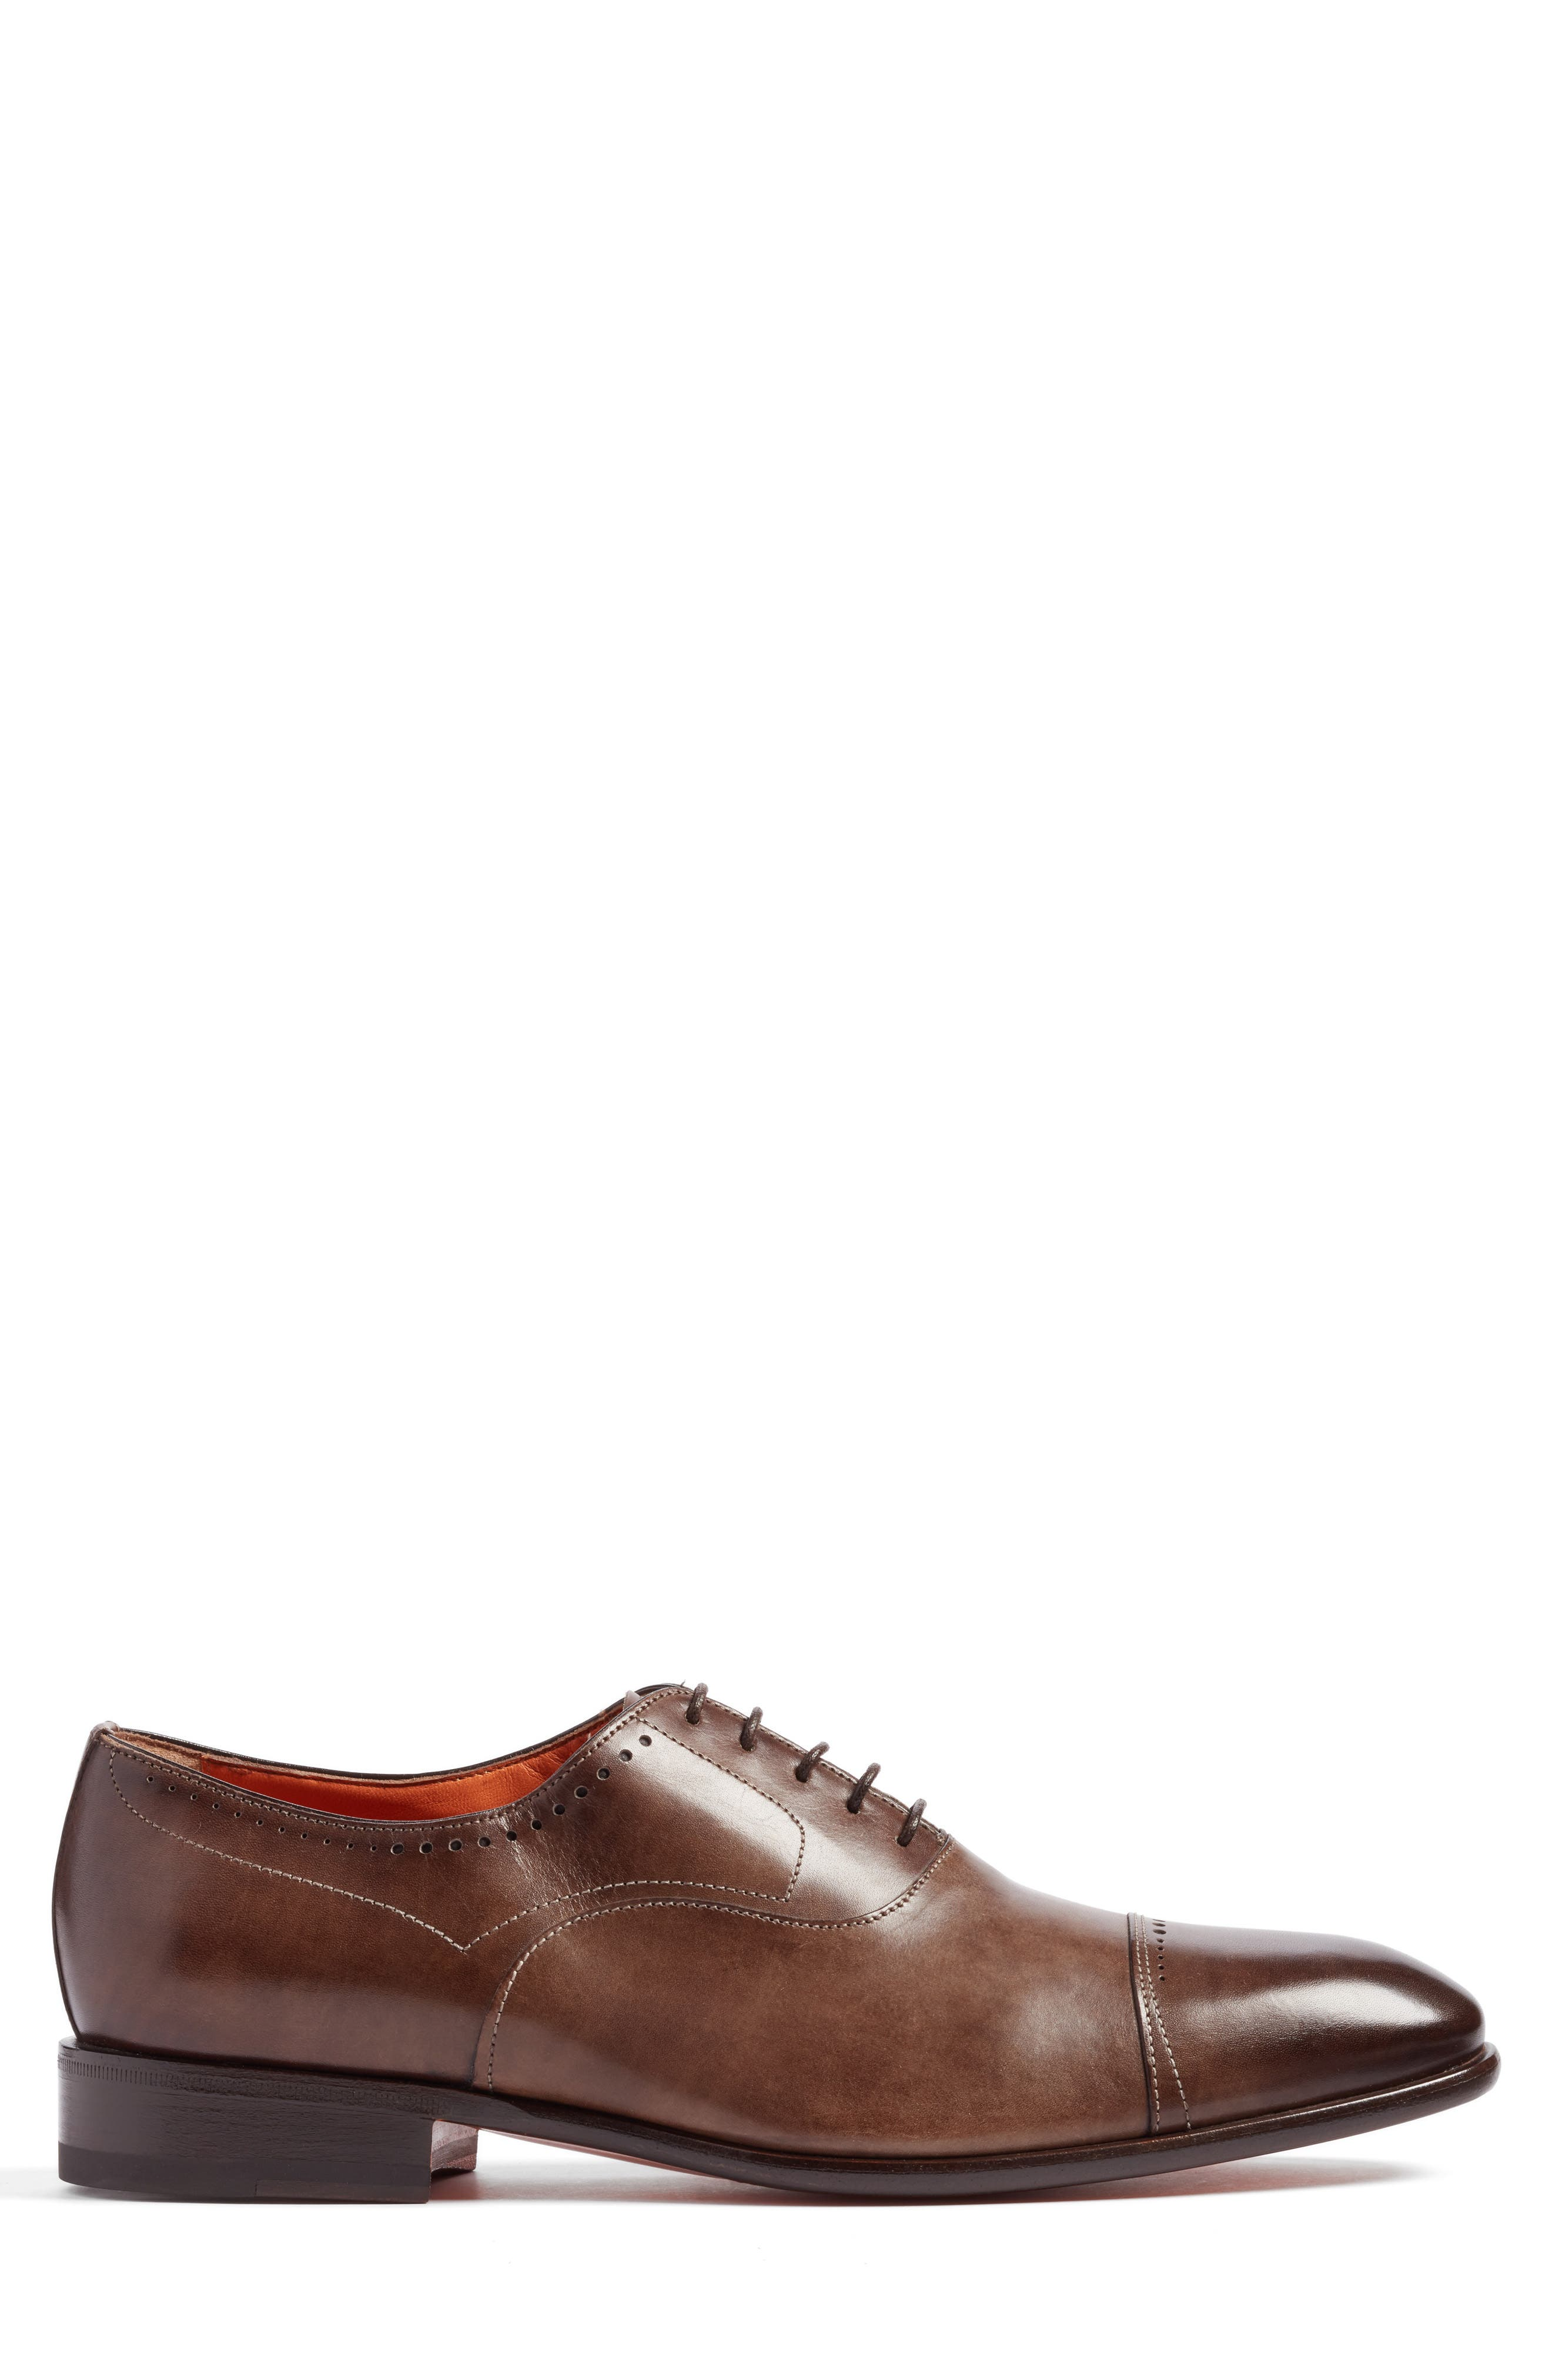 Thurman Cap Toe Oxford,                             Alternate thumbnail 3, color,